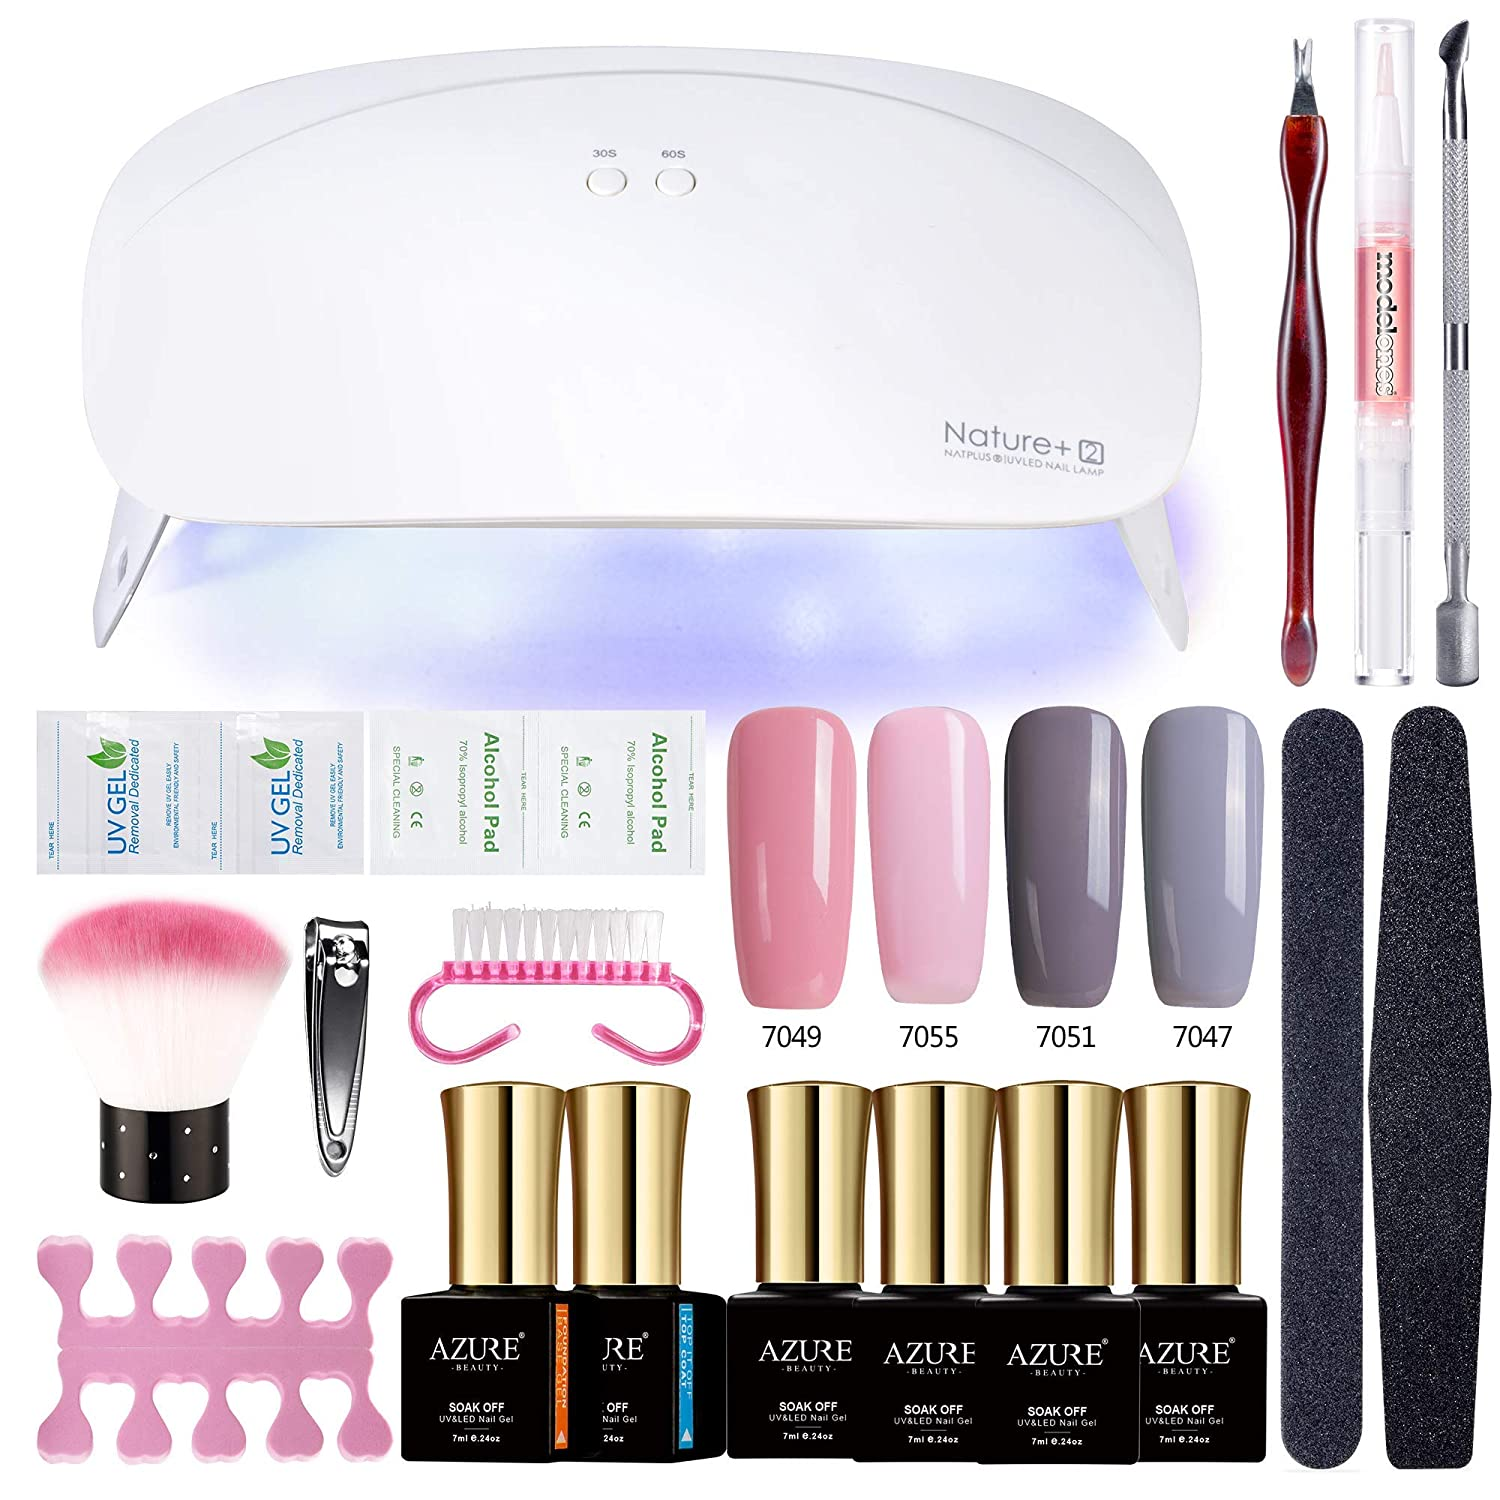 AZUREBEAUTY Gel Nail Polish Starter Kit - 24W UV LED Simultaneously Cures 10 Fingers Nail Dryer Manicure Tools 4 Pink Grey Color Gel polish with Top and Base Coat